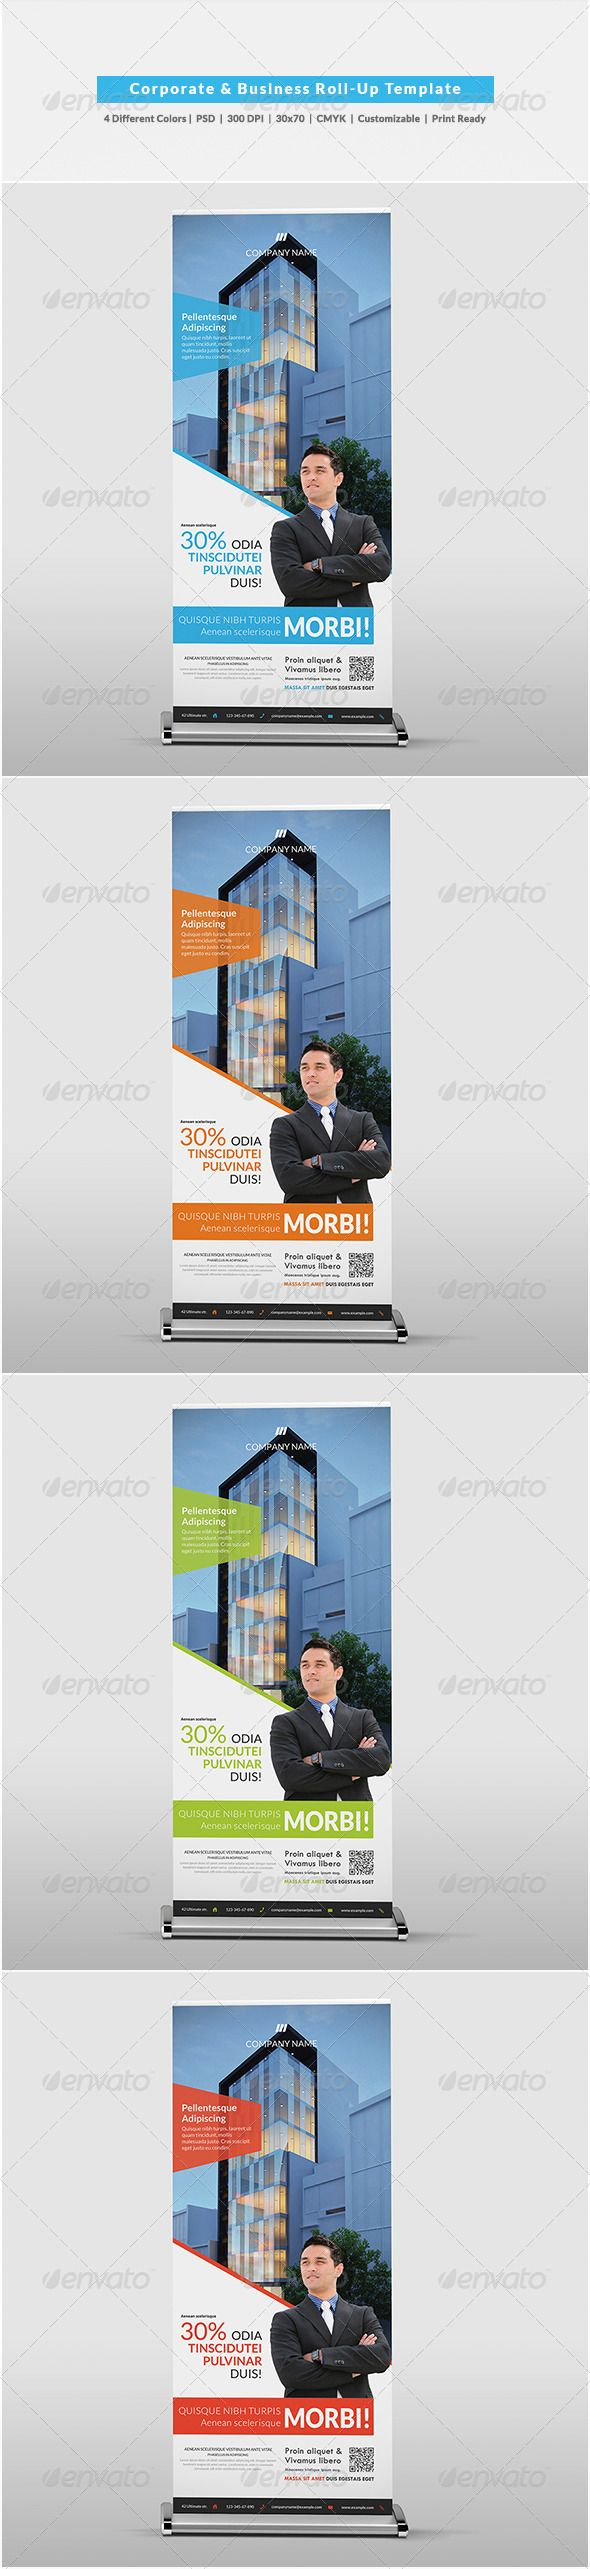 Corporate & Business Roll-Up Template #GraphicRiver Corporate & Business Roll-Up Template 4 Different Colors Red Green Blue Orange Details Easy to modify CMYK 300 DPI 30×70 Print ready Layered PSD Fonts Open Sans Lato -Myriad Pro (Default photoshop font, can be replaced with other sans-serif font) -Tw Cen MT (Default microsoft font, can be replaced with other sans-serif font) Photos Photos are not included. Photos by jinkazamah , Victor1558 Thank you! Created: 27 November 13 Graphics Files…